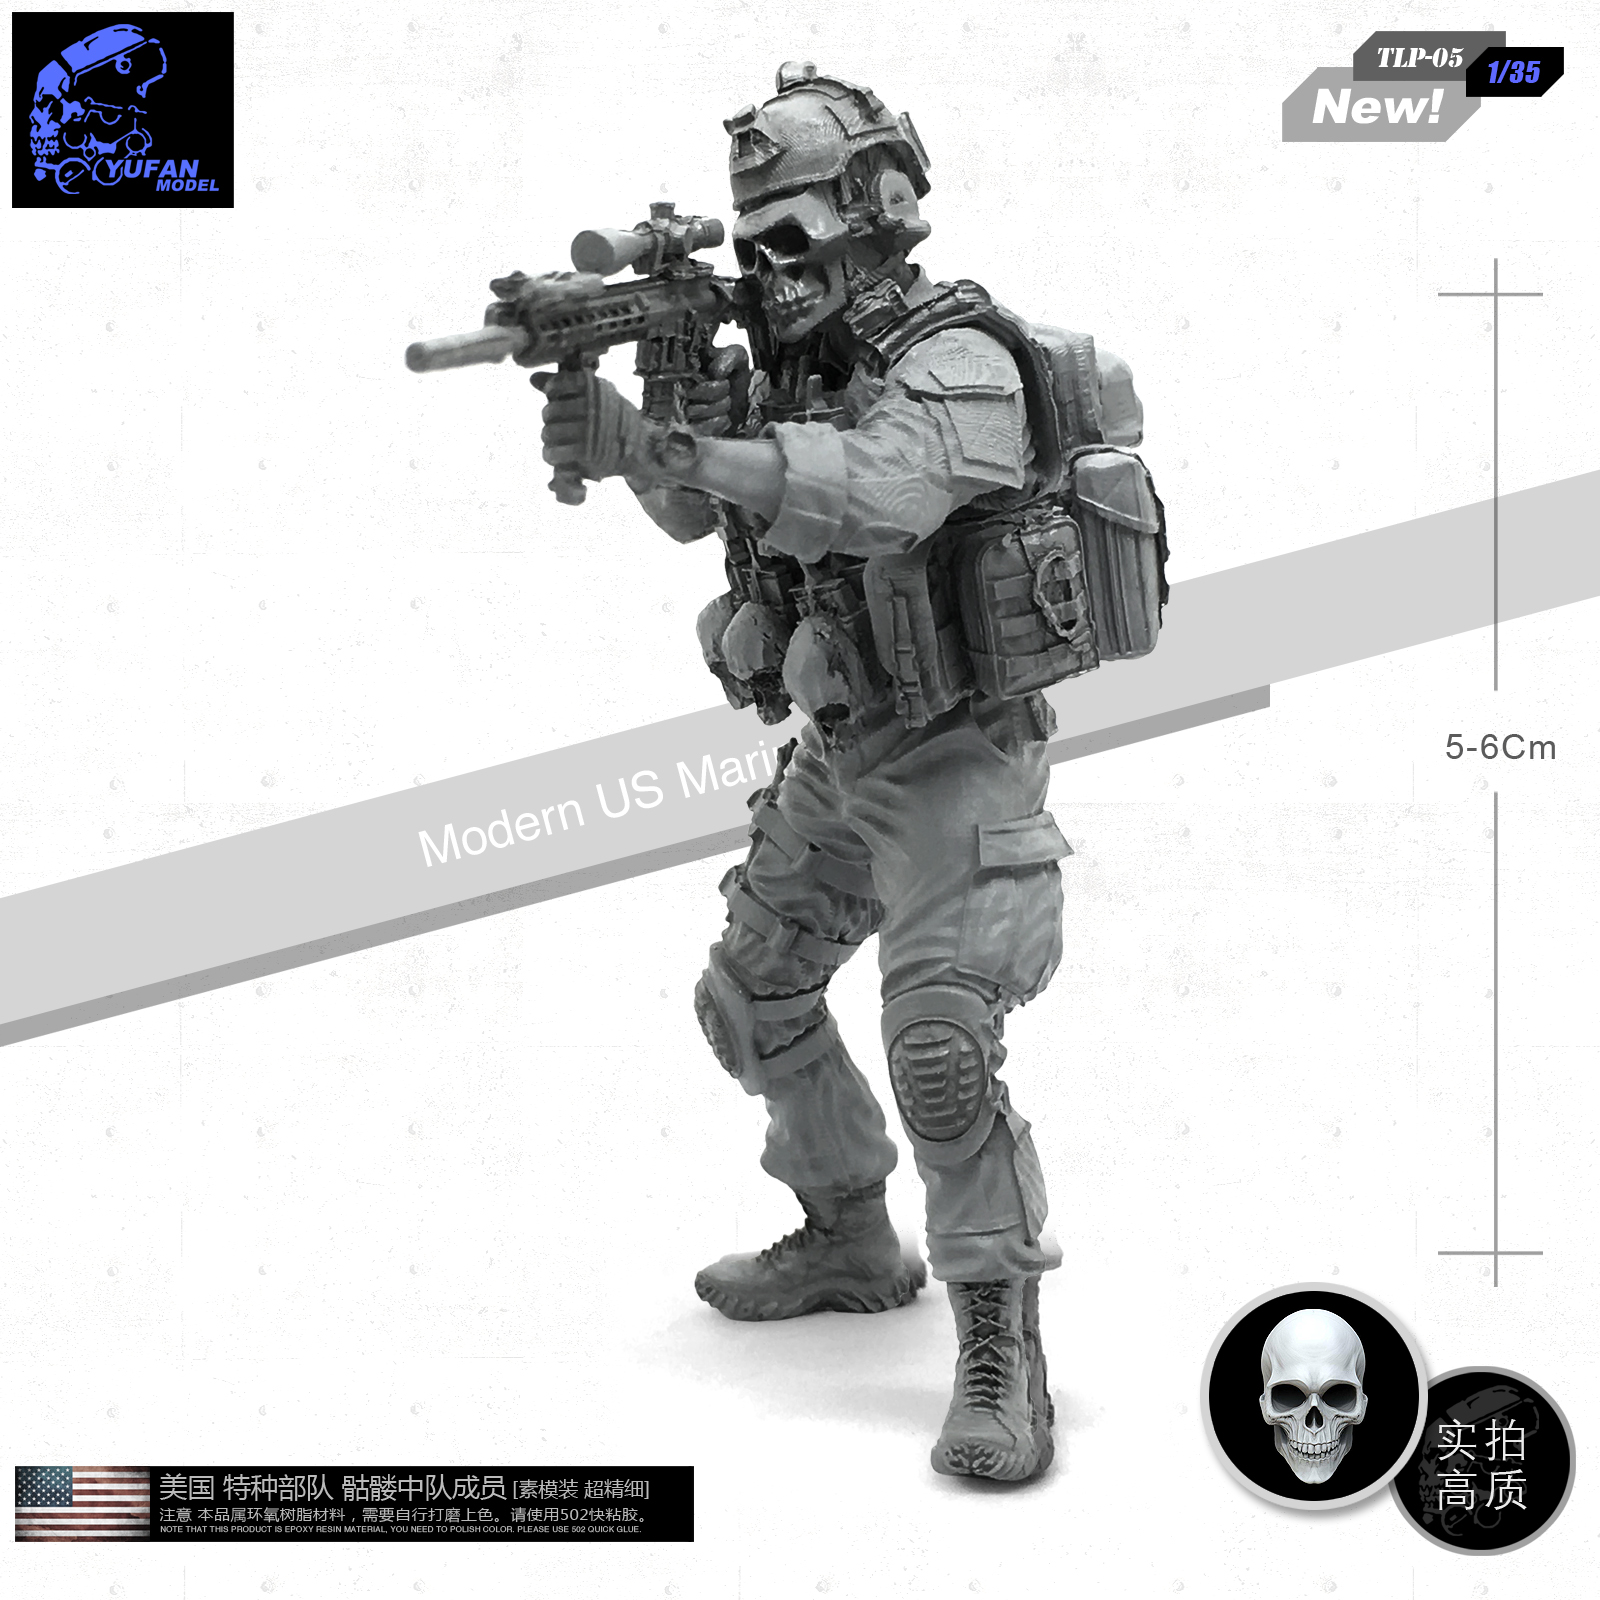 Yufan Model 1/35 Figure Resin Soldier Member Of Skull Squadron Of Us Special Forces Military Model Unmounted Tlp-05(China)